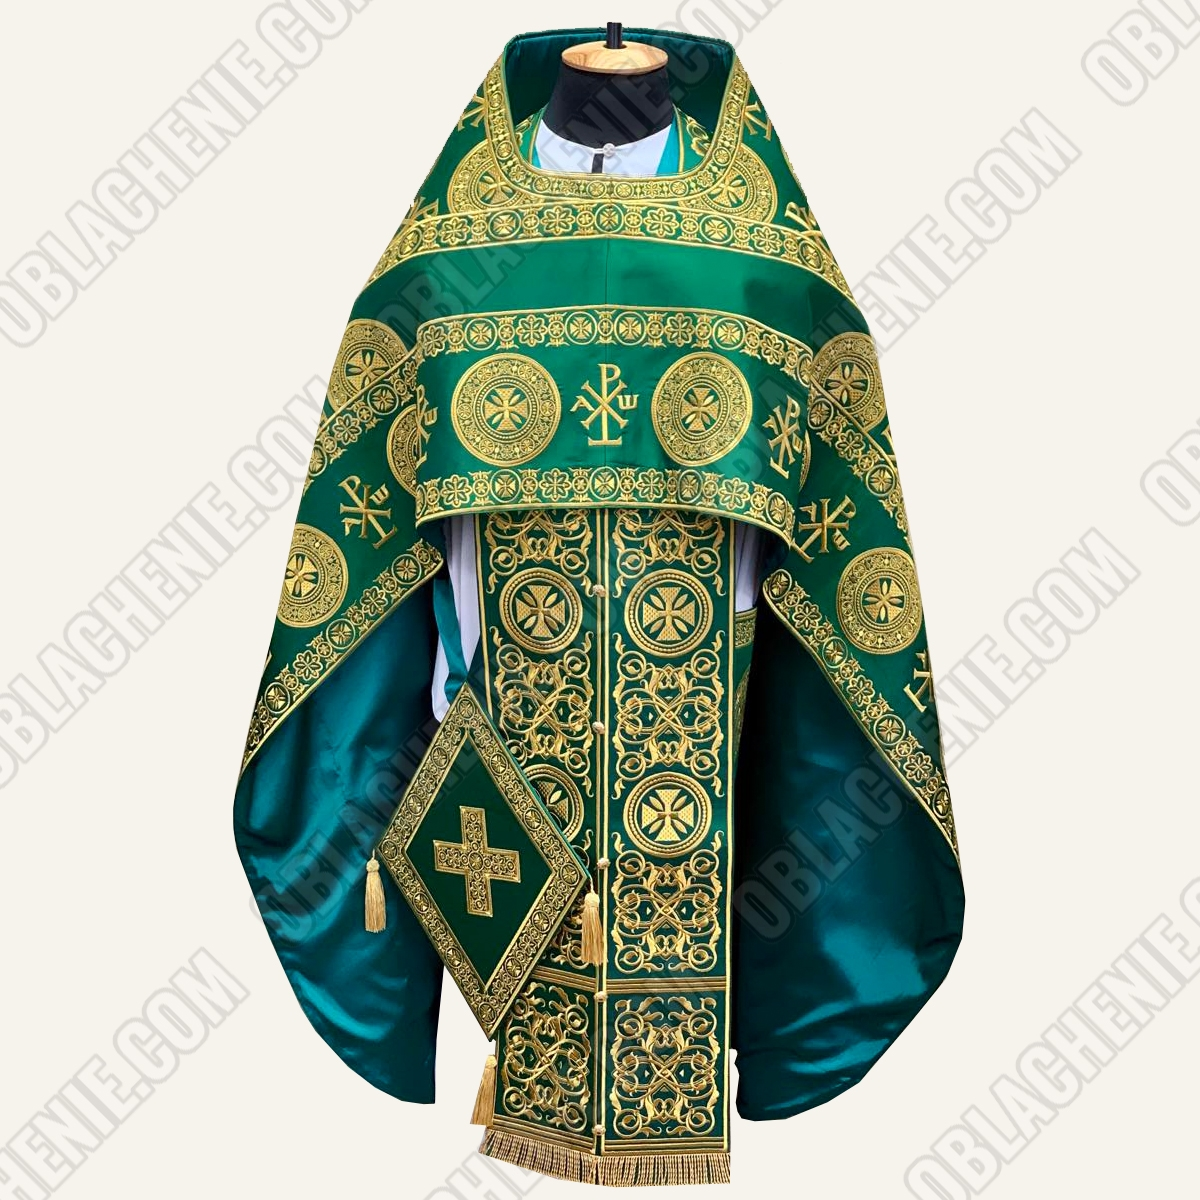 EMBROIDERED PRIEST'S VESTMENTS 11080